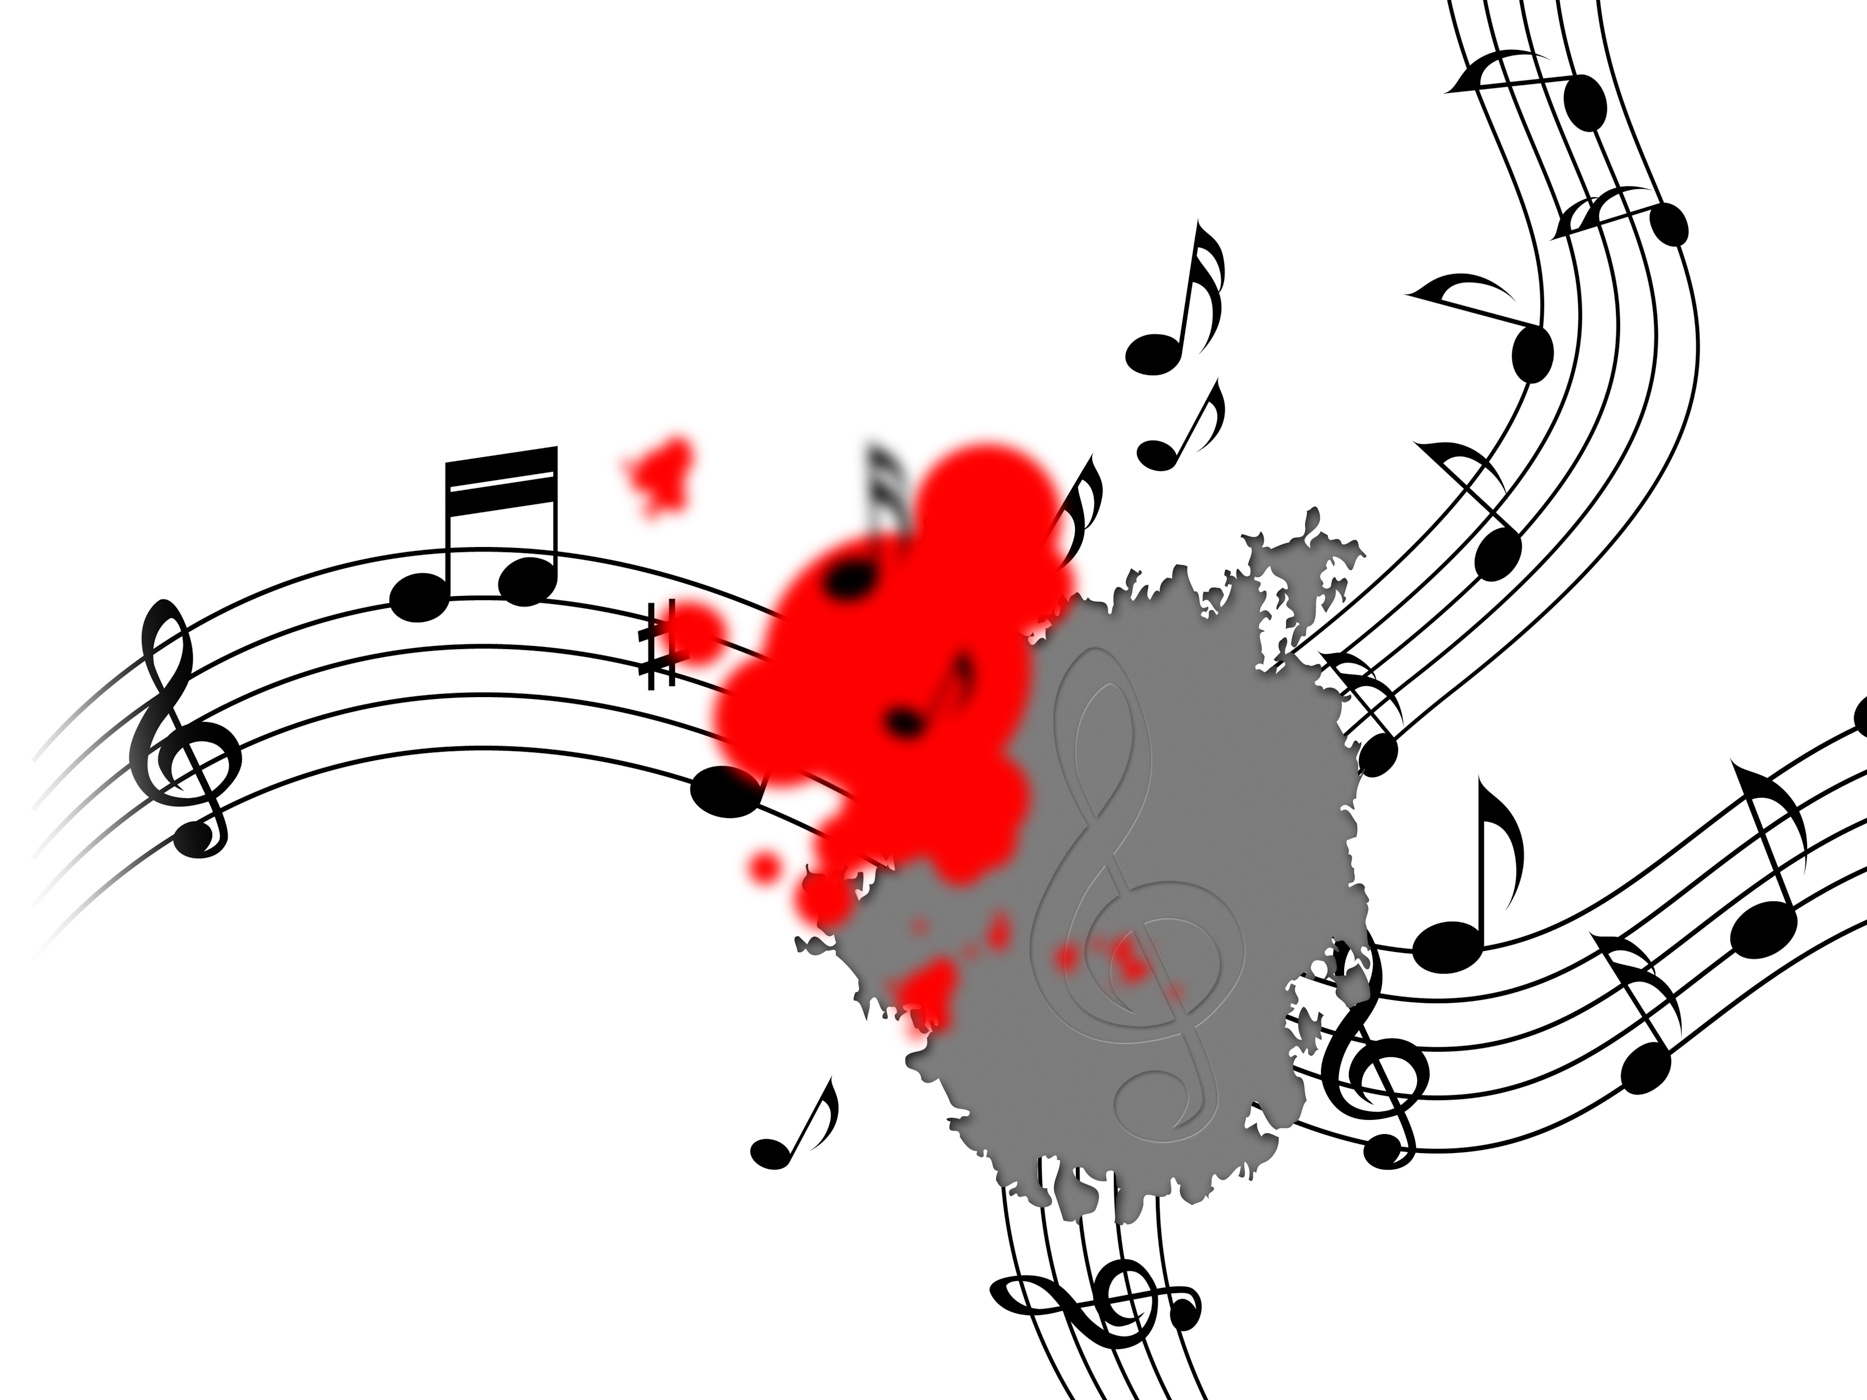 Free photo: Splat Music Shows Musical Note And Clef